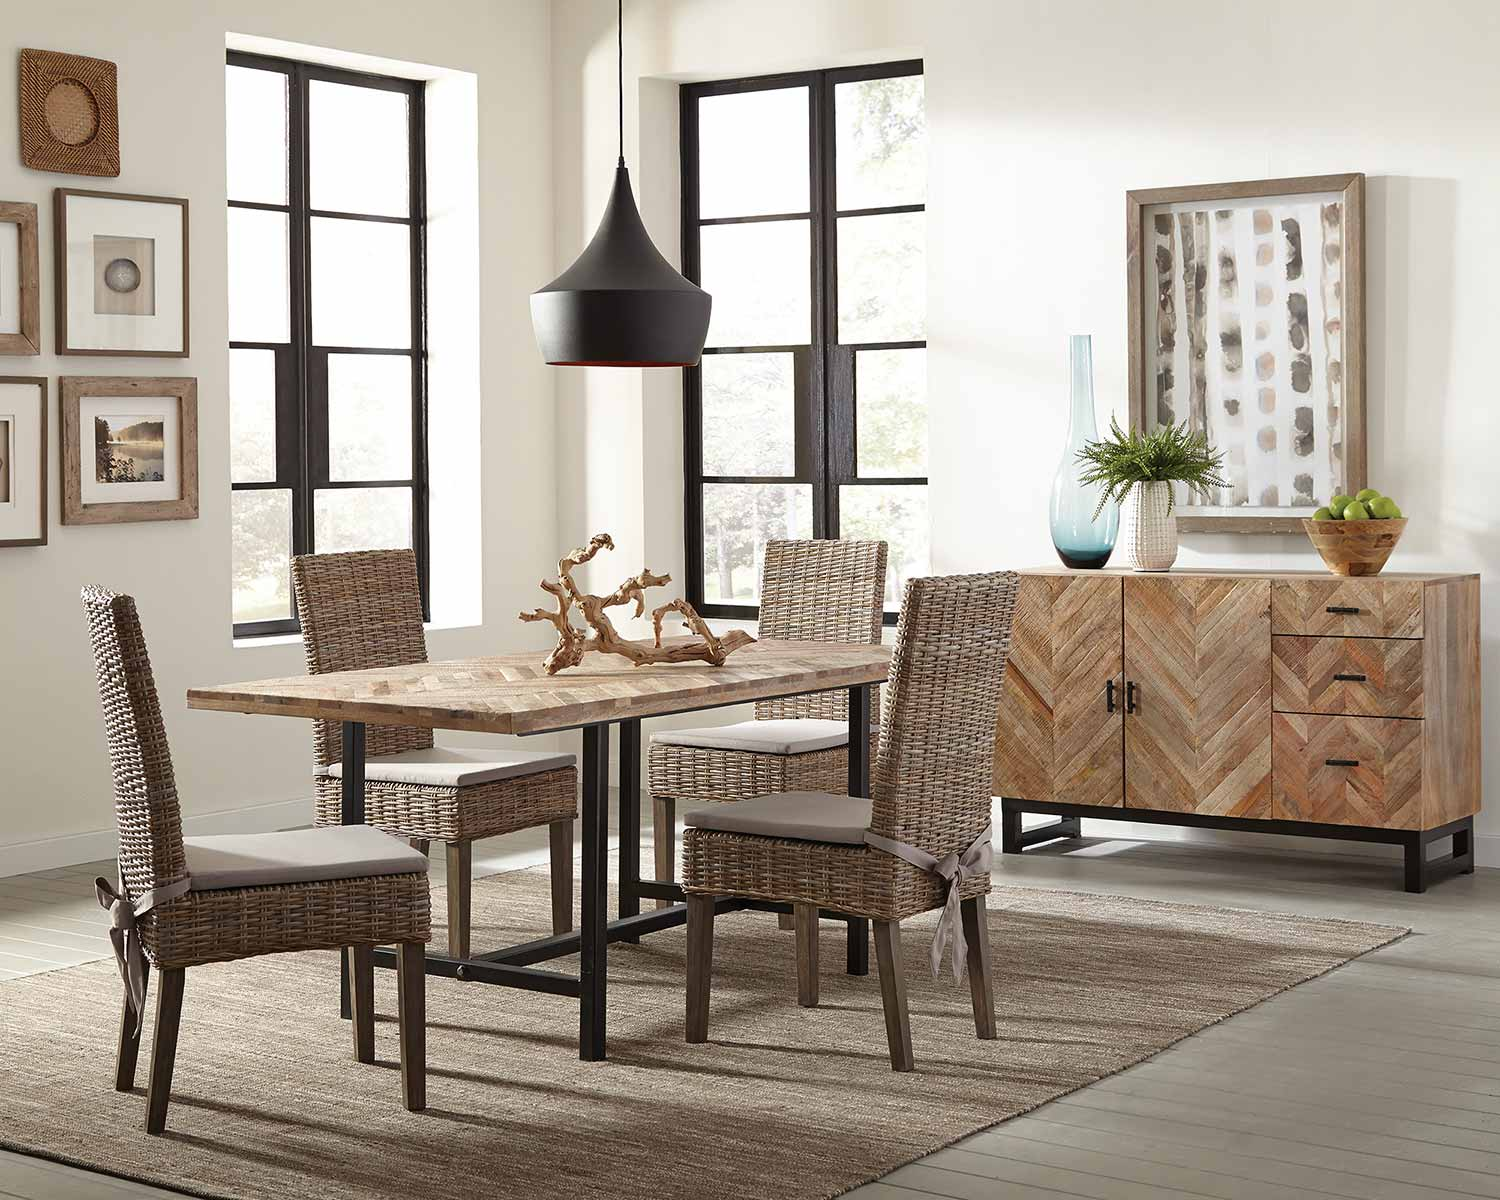 Coaster Thompson Dining Set - Natural Mango/Black Metal